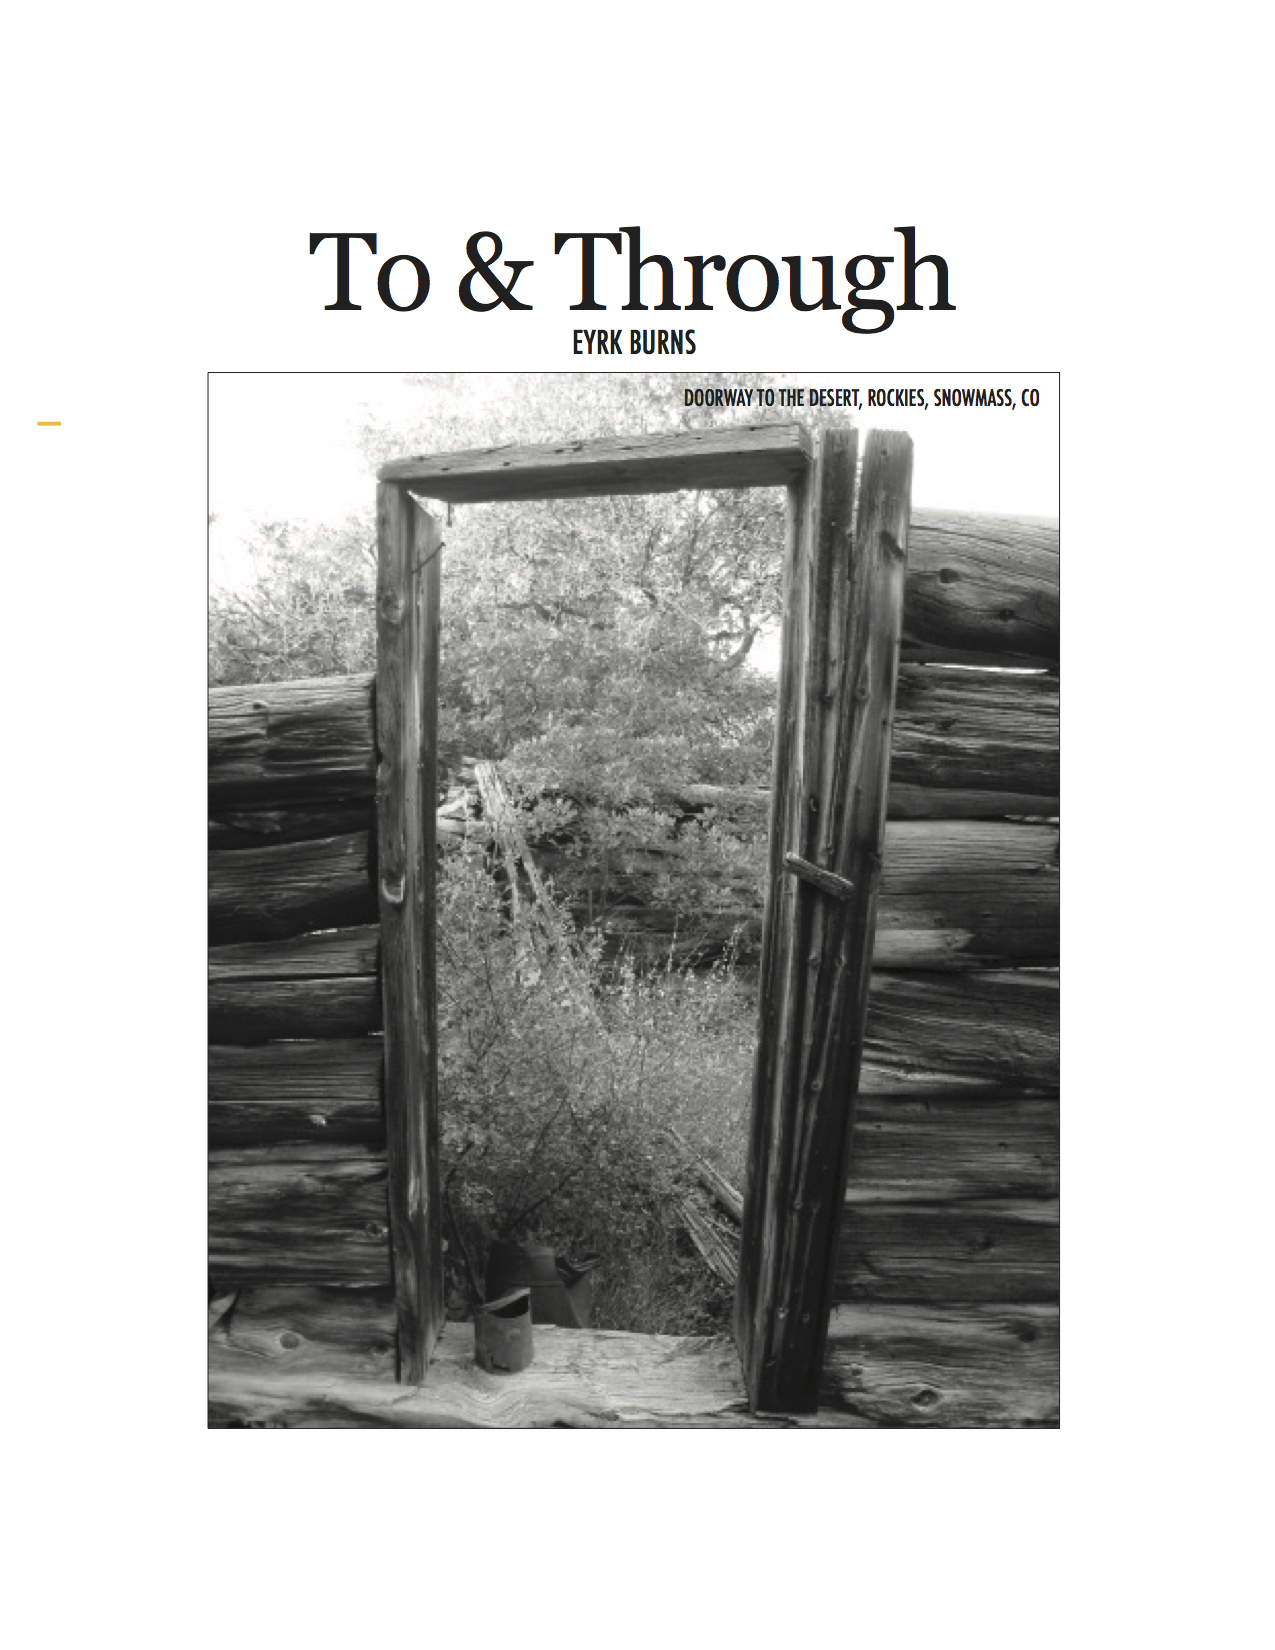 Artis 1 To & Through cover.jpg